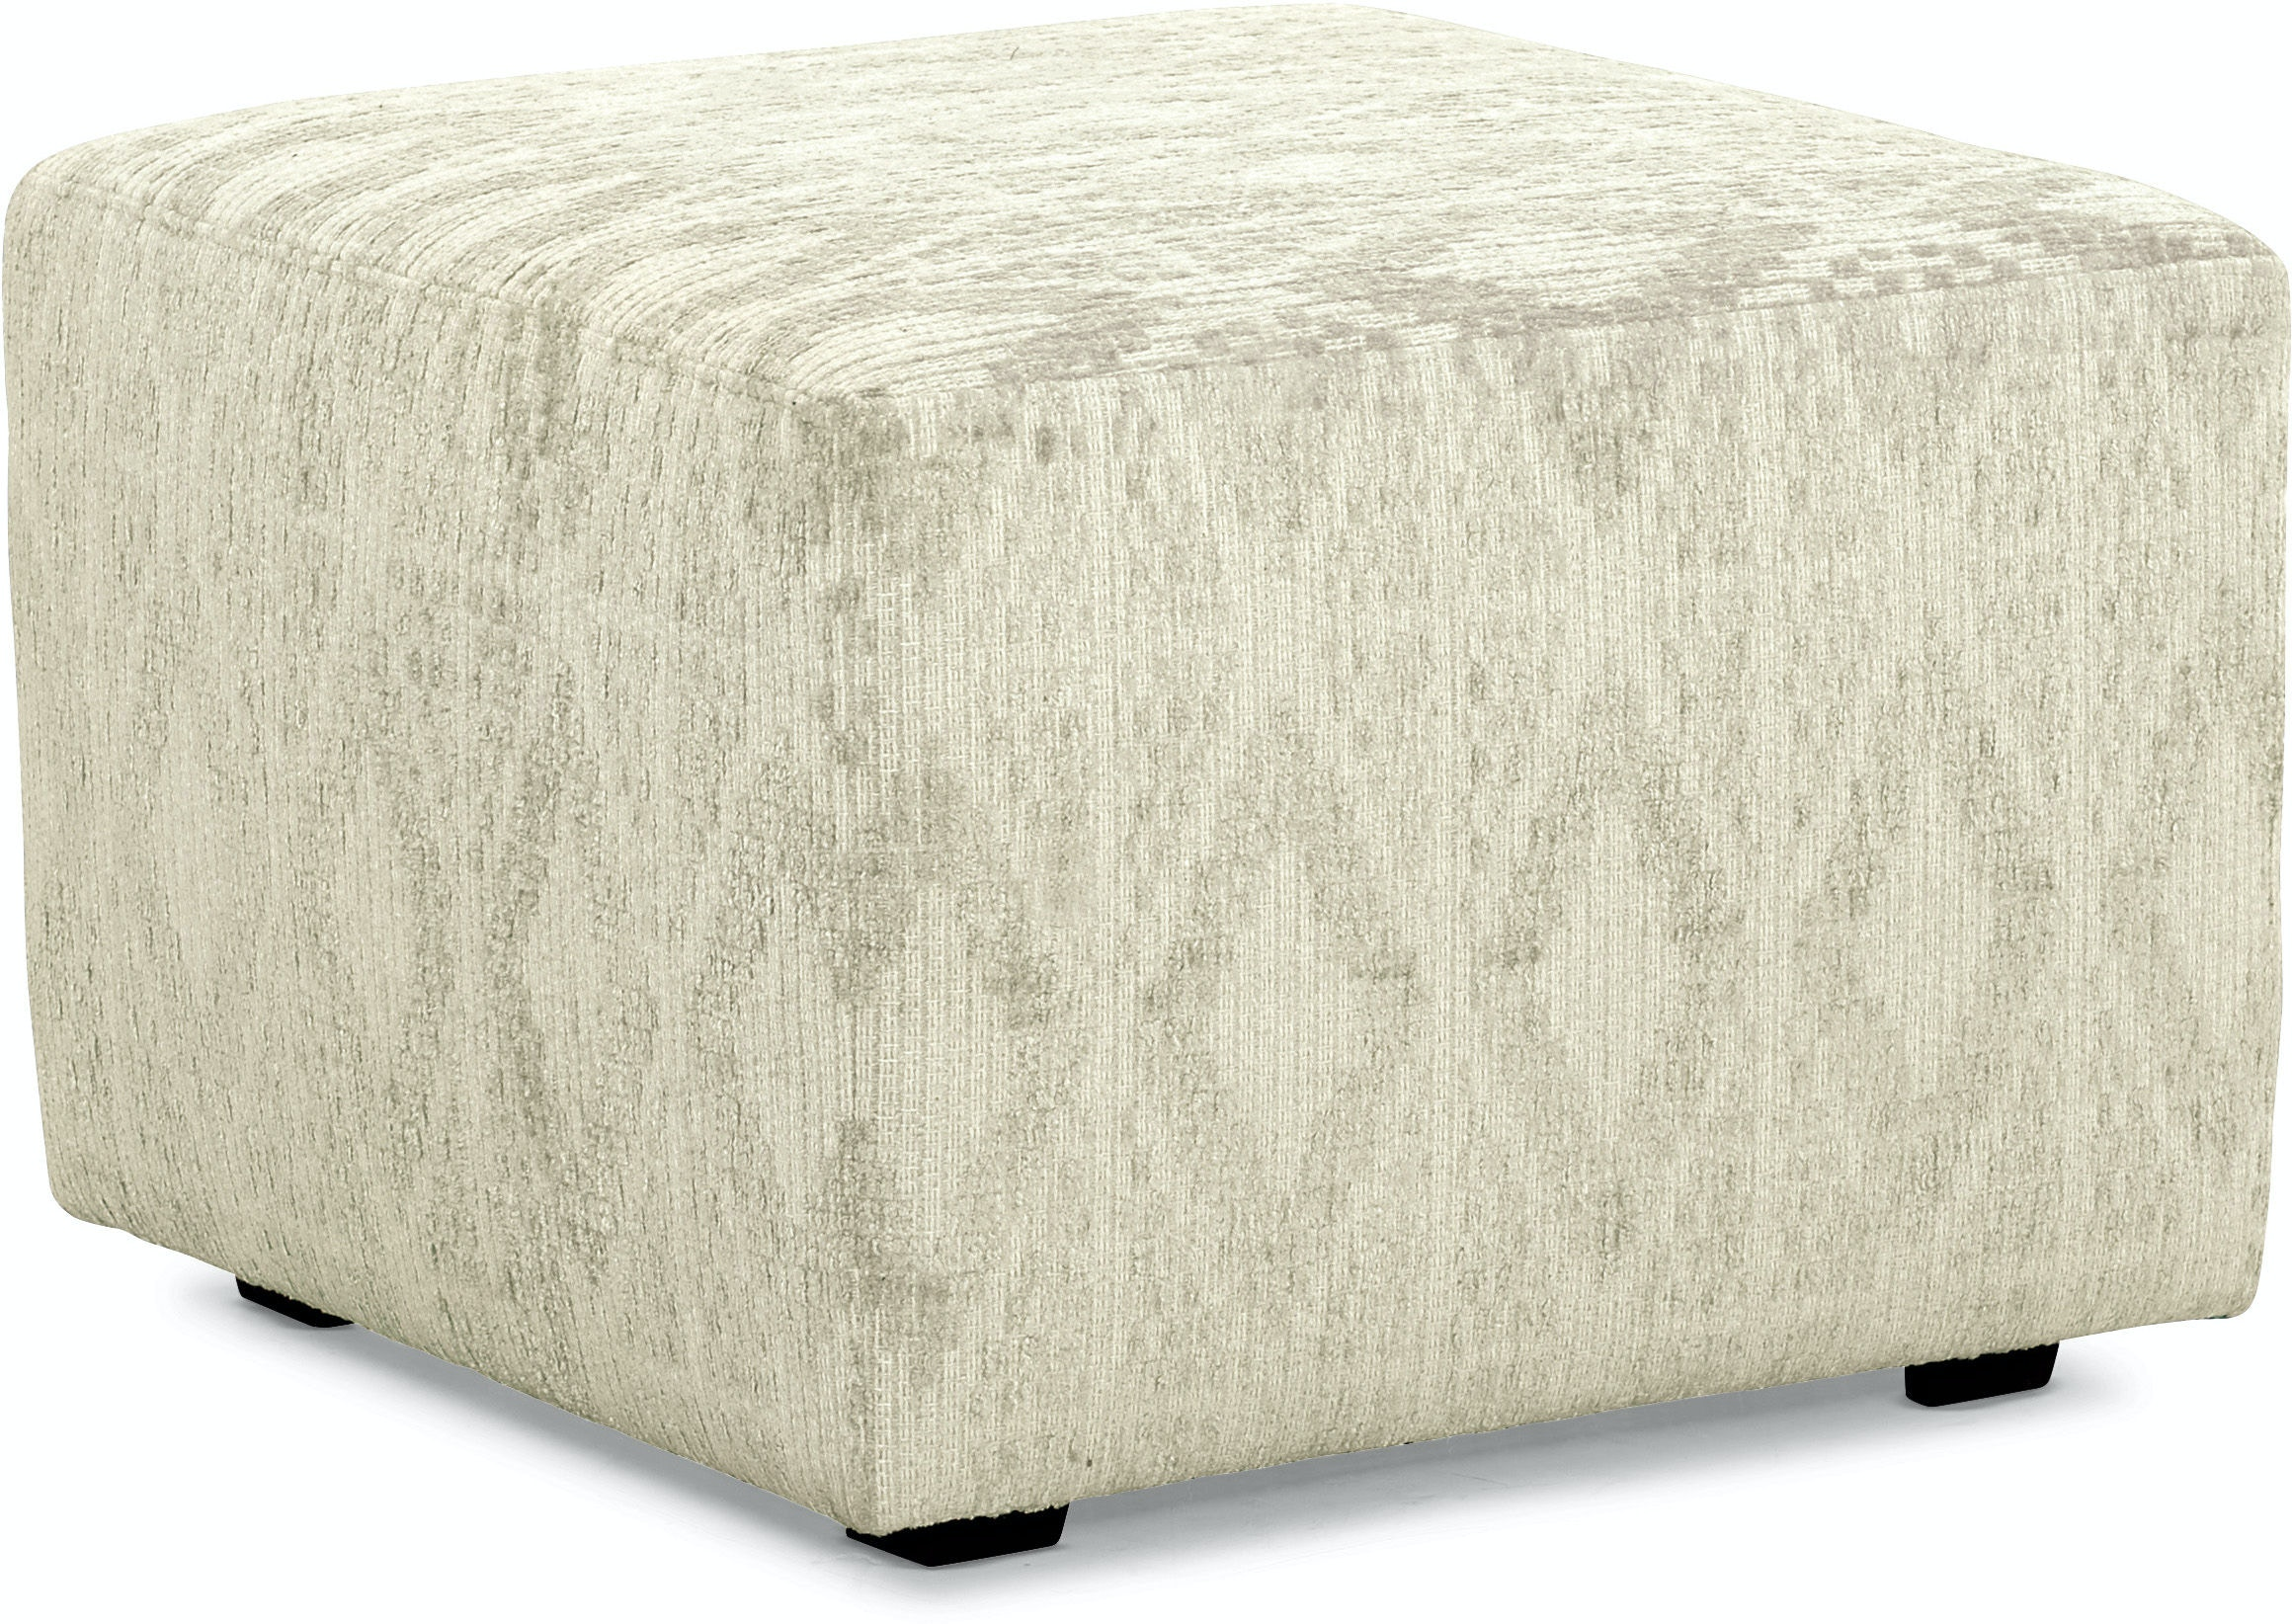 Marq Living Room Porter 21in Cube Ottoman 758 3000 21